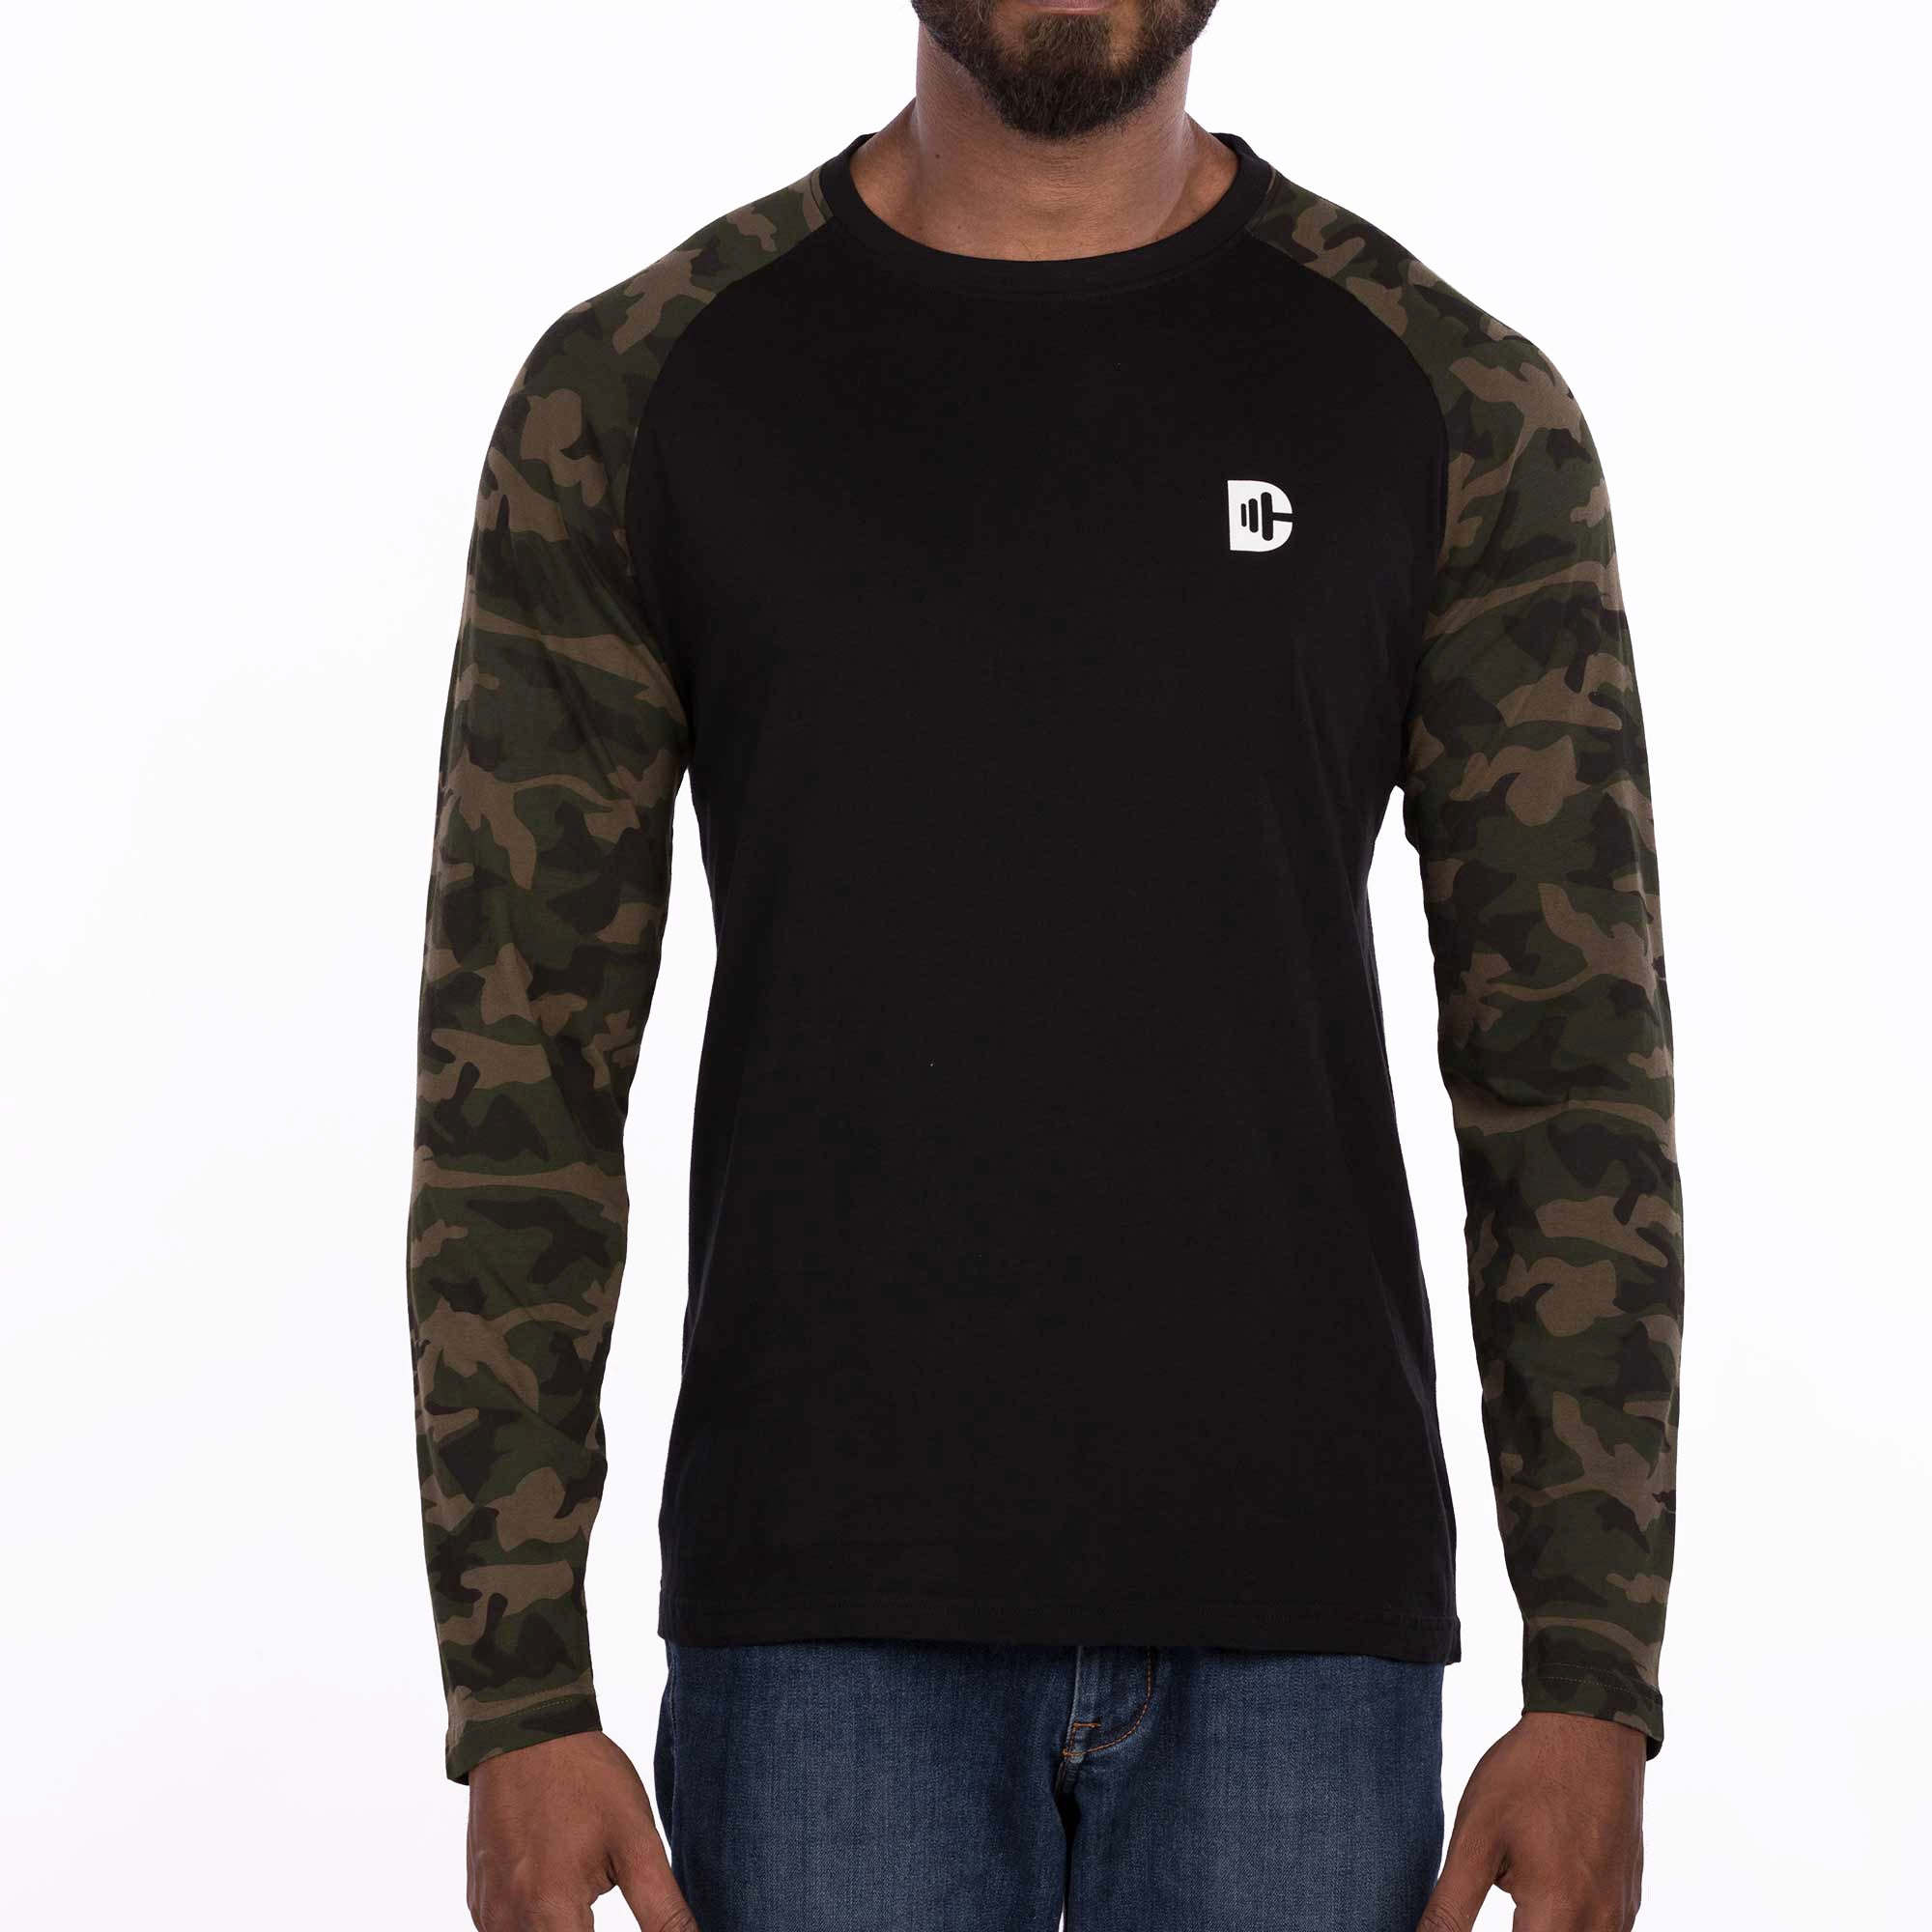 DB103A Camou T-Shirt Loop Knit - Military Green